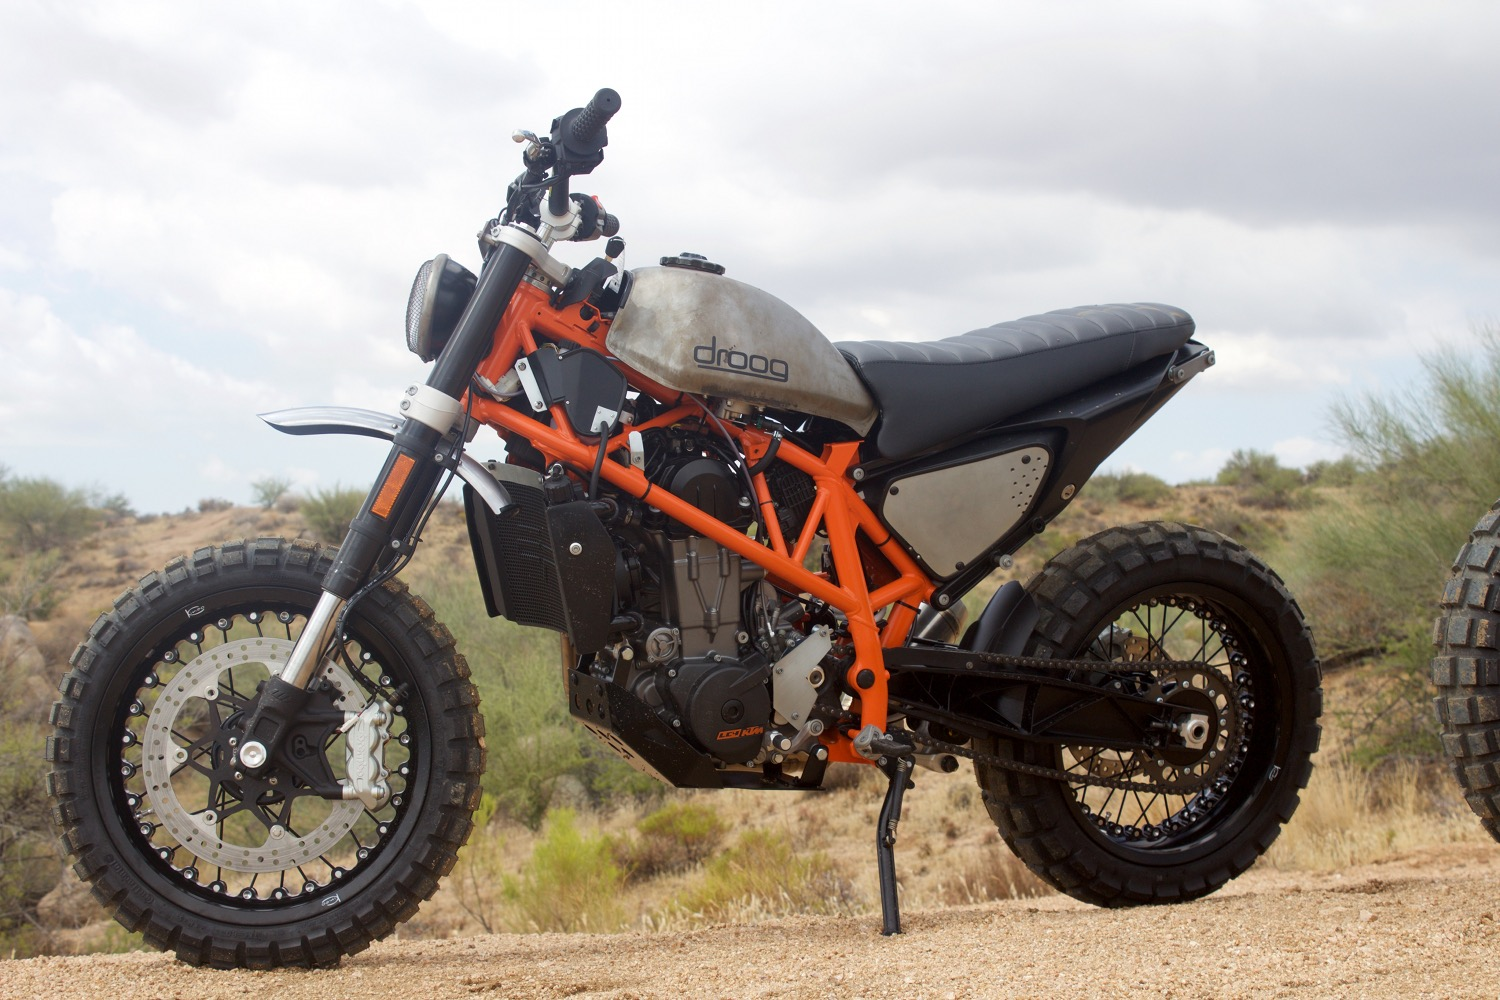 A Little On The Duke As You May Know Bike Was KTMs First Street And Supermoto Having Only Produced Off Road Bikes Until Then